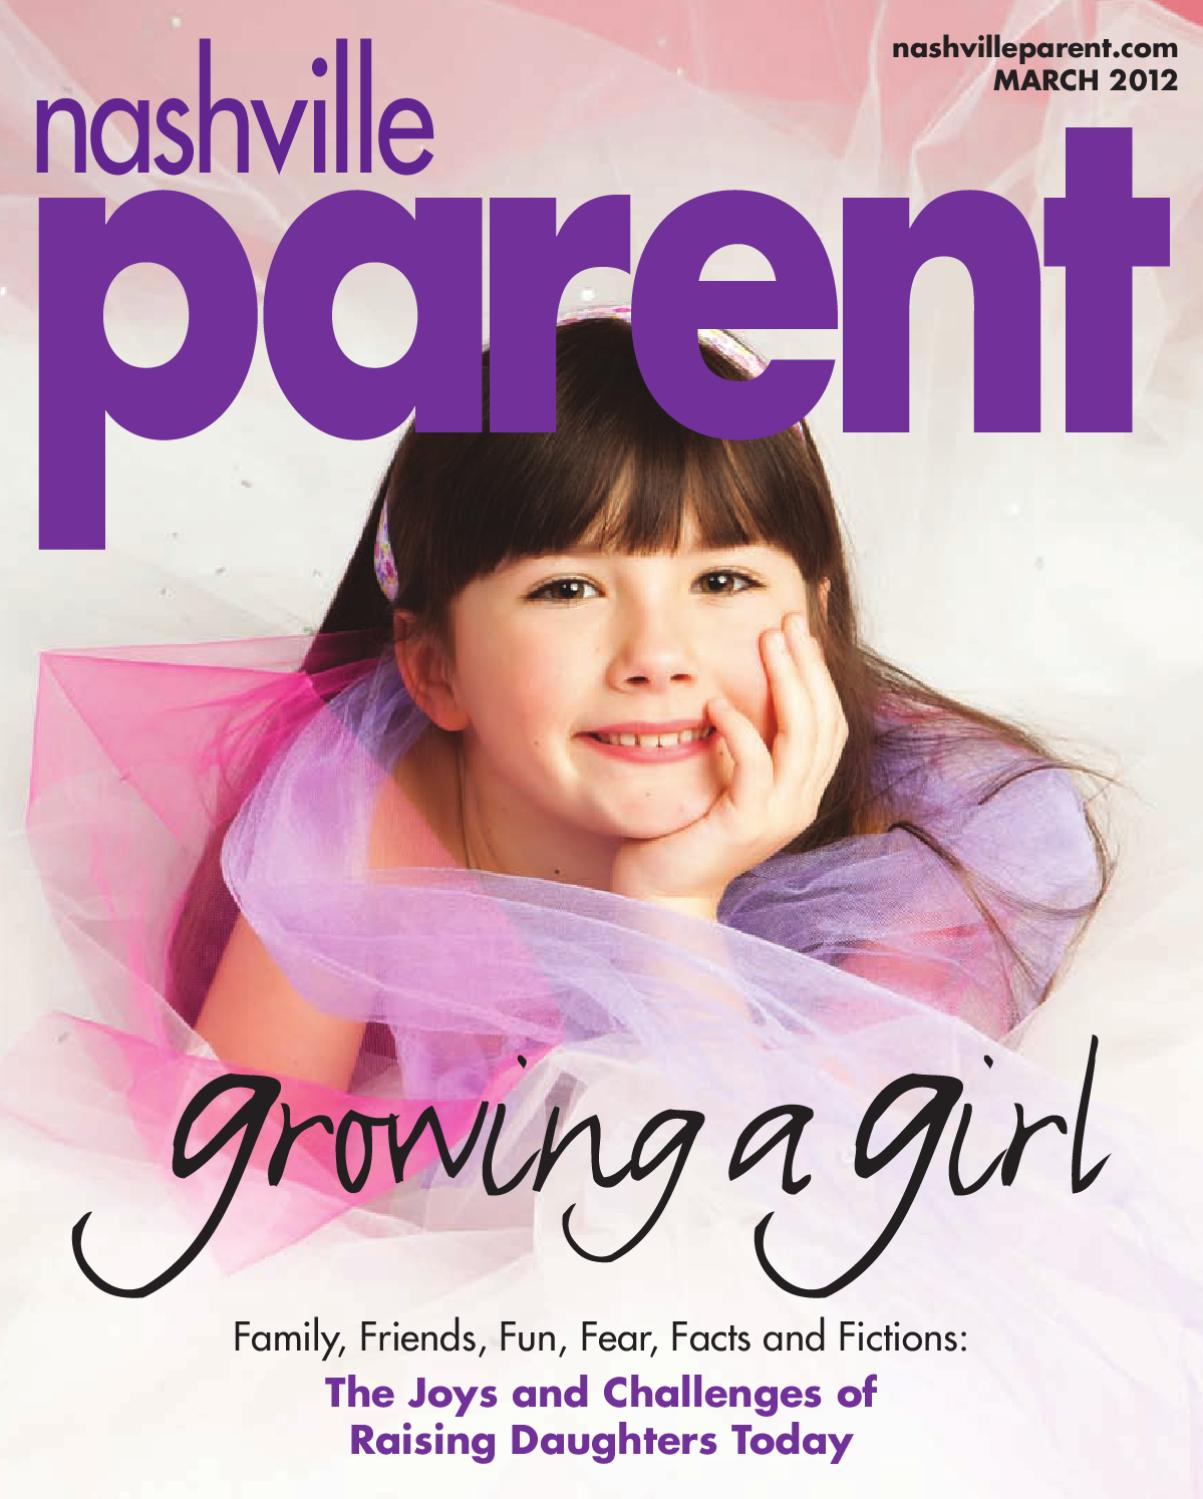 Nashville Parent - March 2012 by Day Communications/DayCom Media - issuu